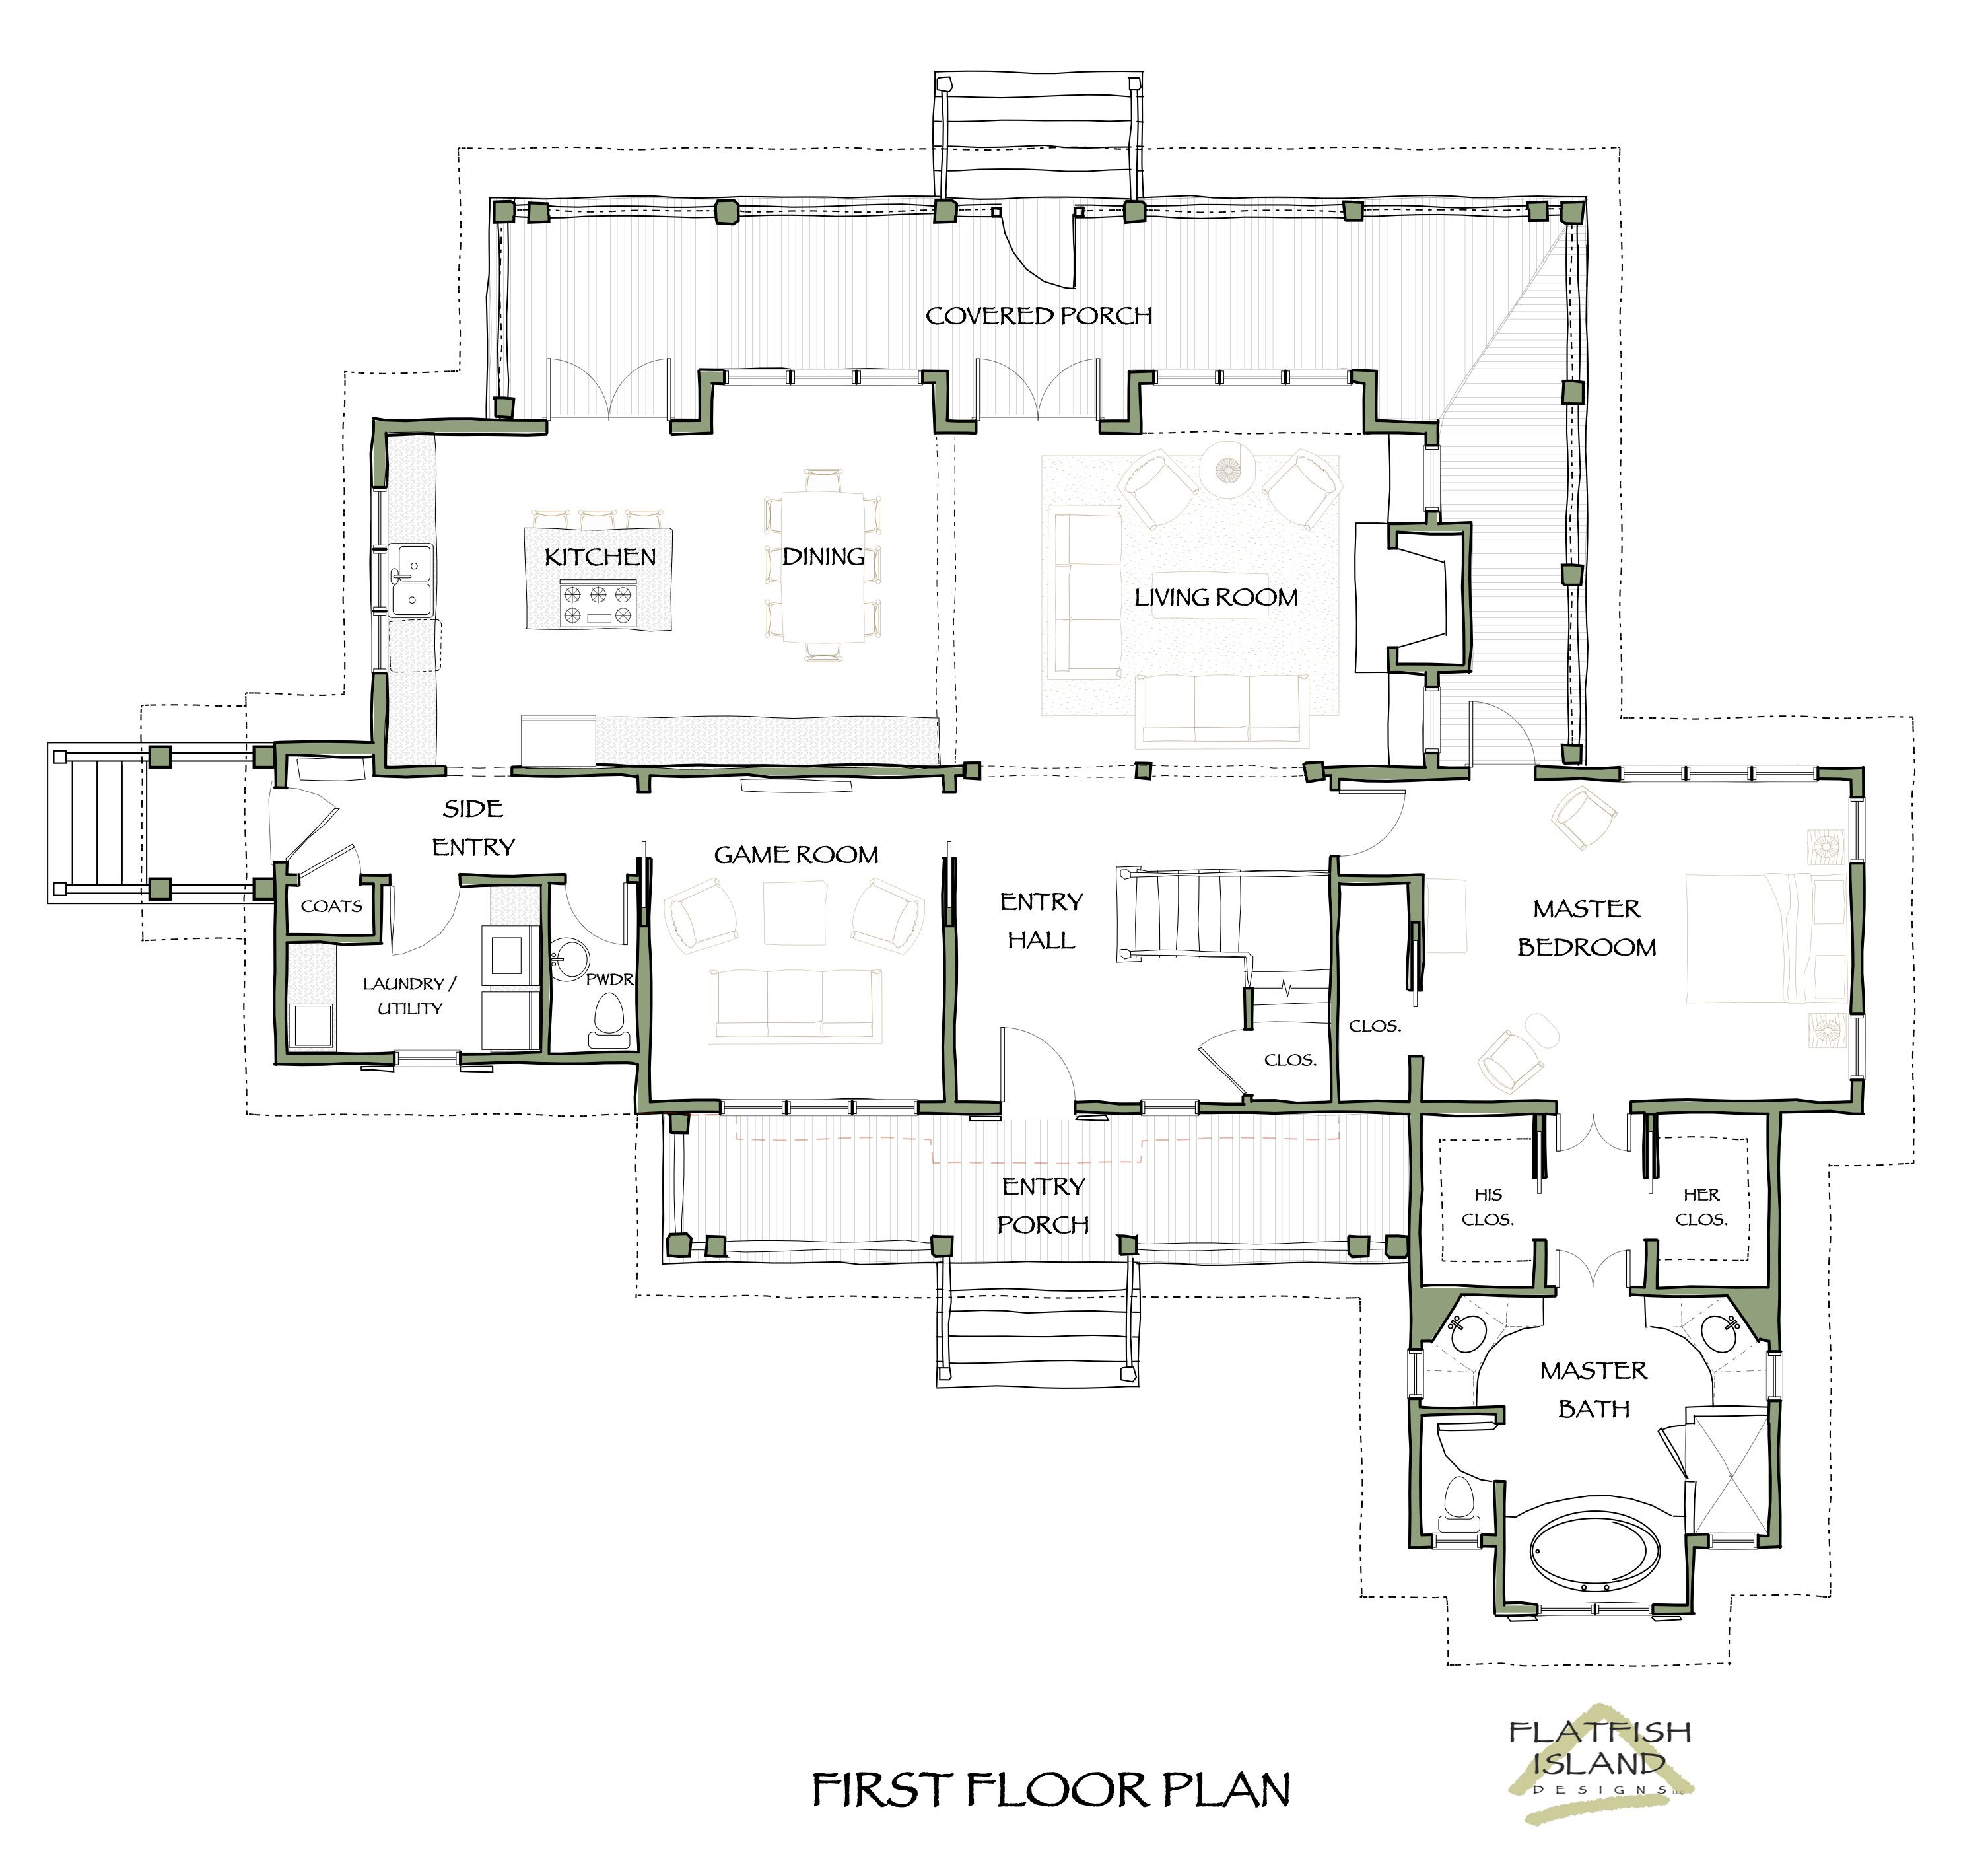 House plans with his and her master bathrooms google search